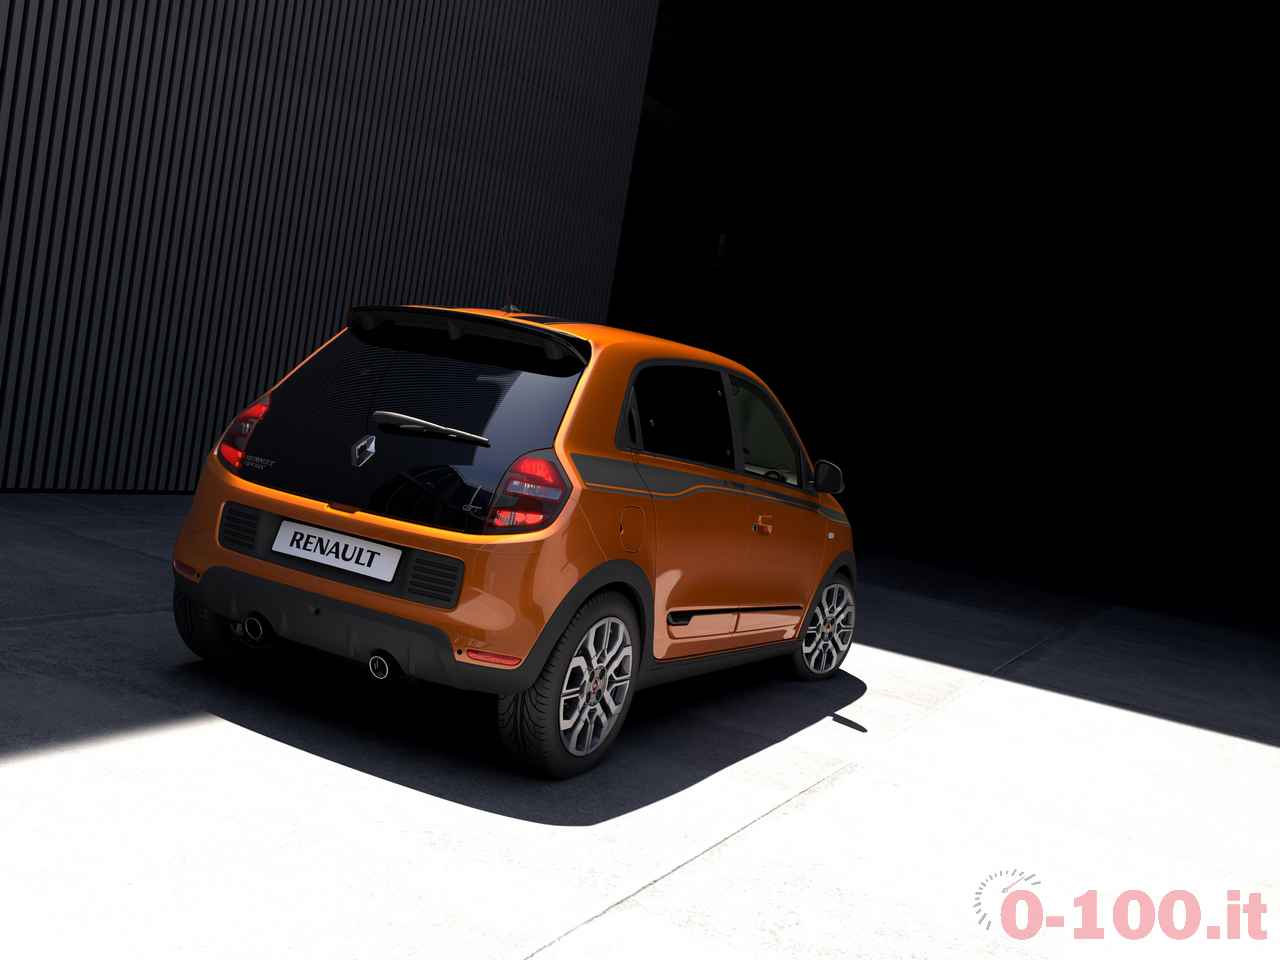 renault-twingo-gt-prezzo-price-festival-of-speed-di-goodwood-2016_0-1008